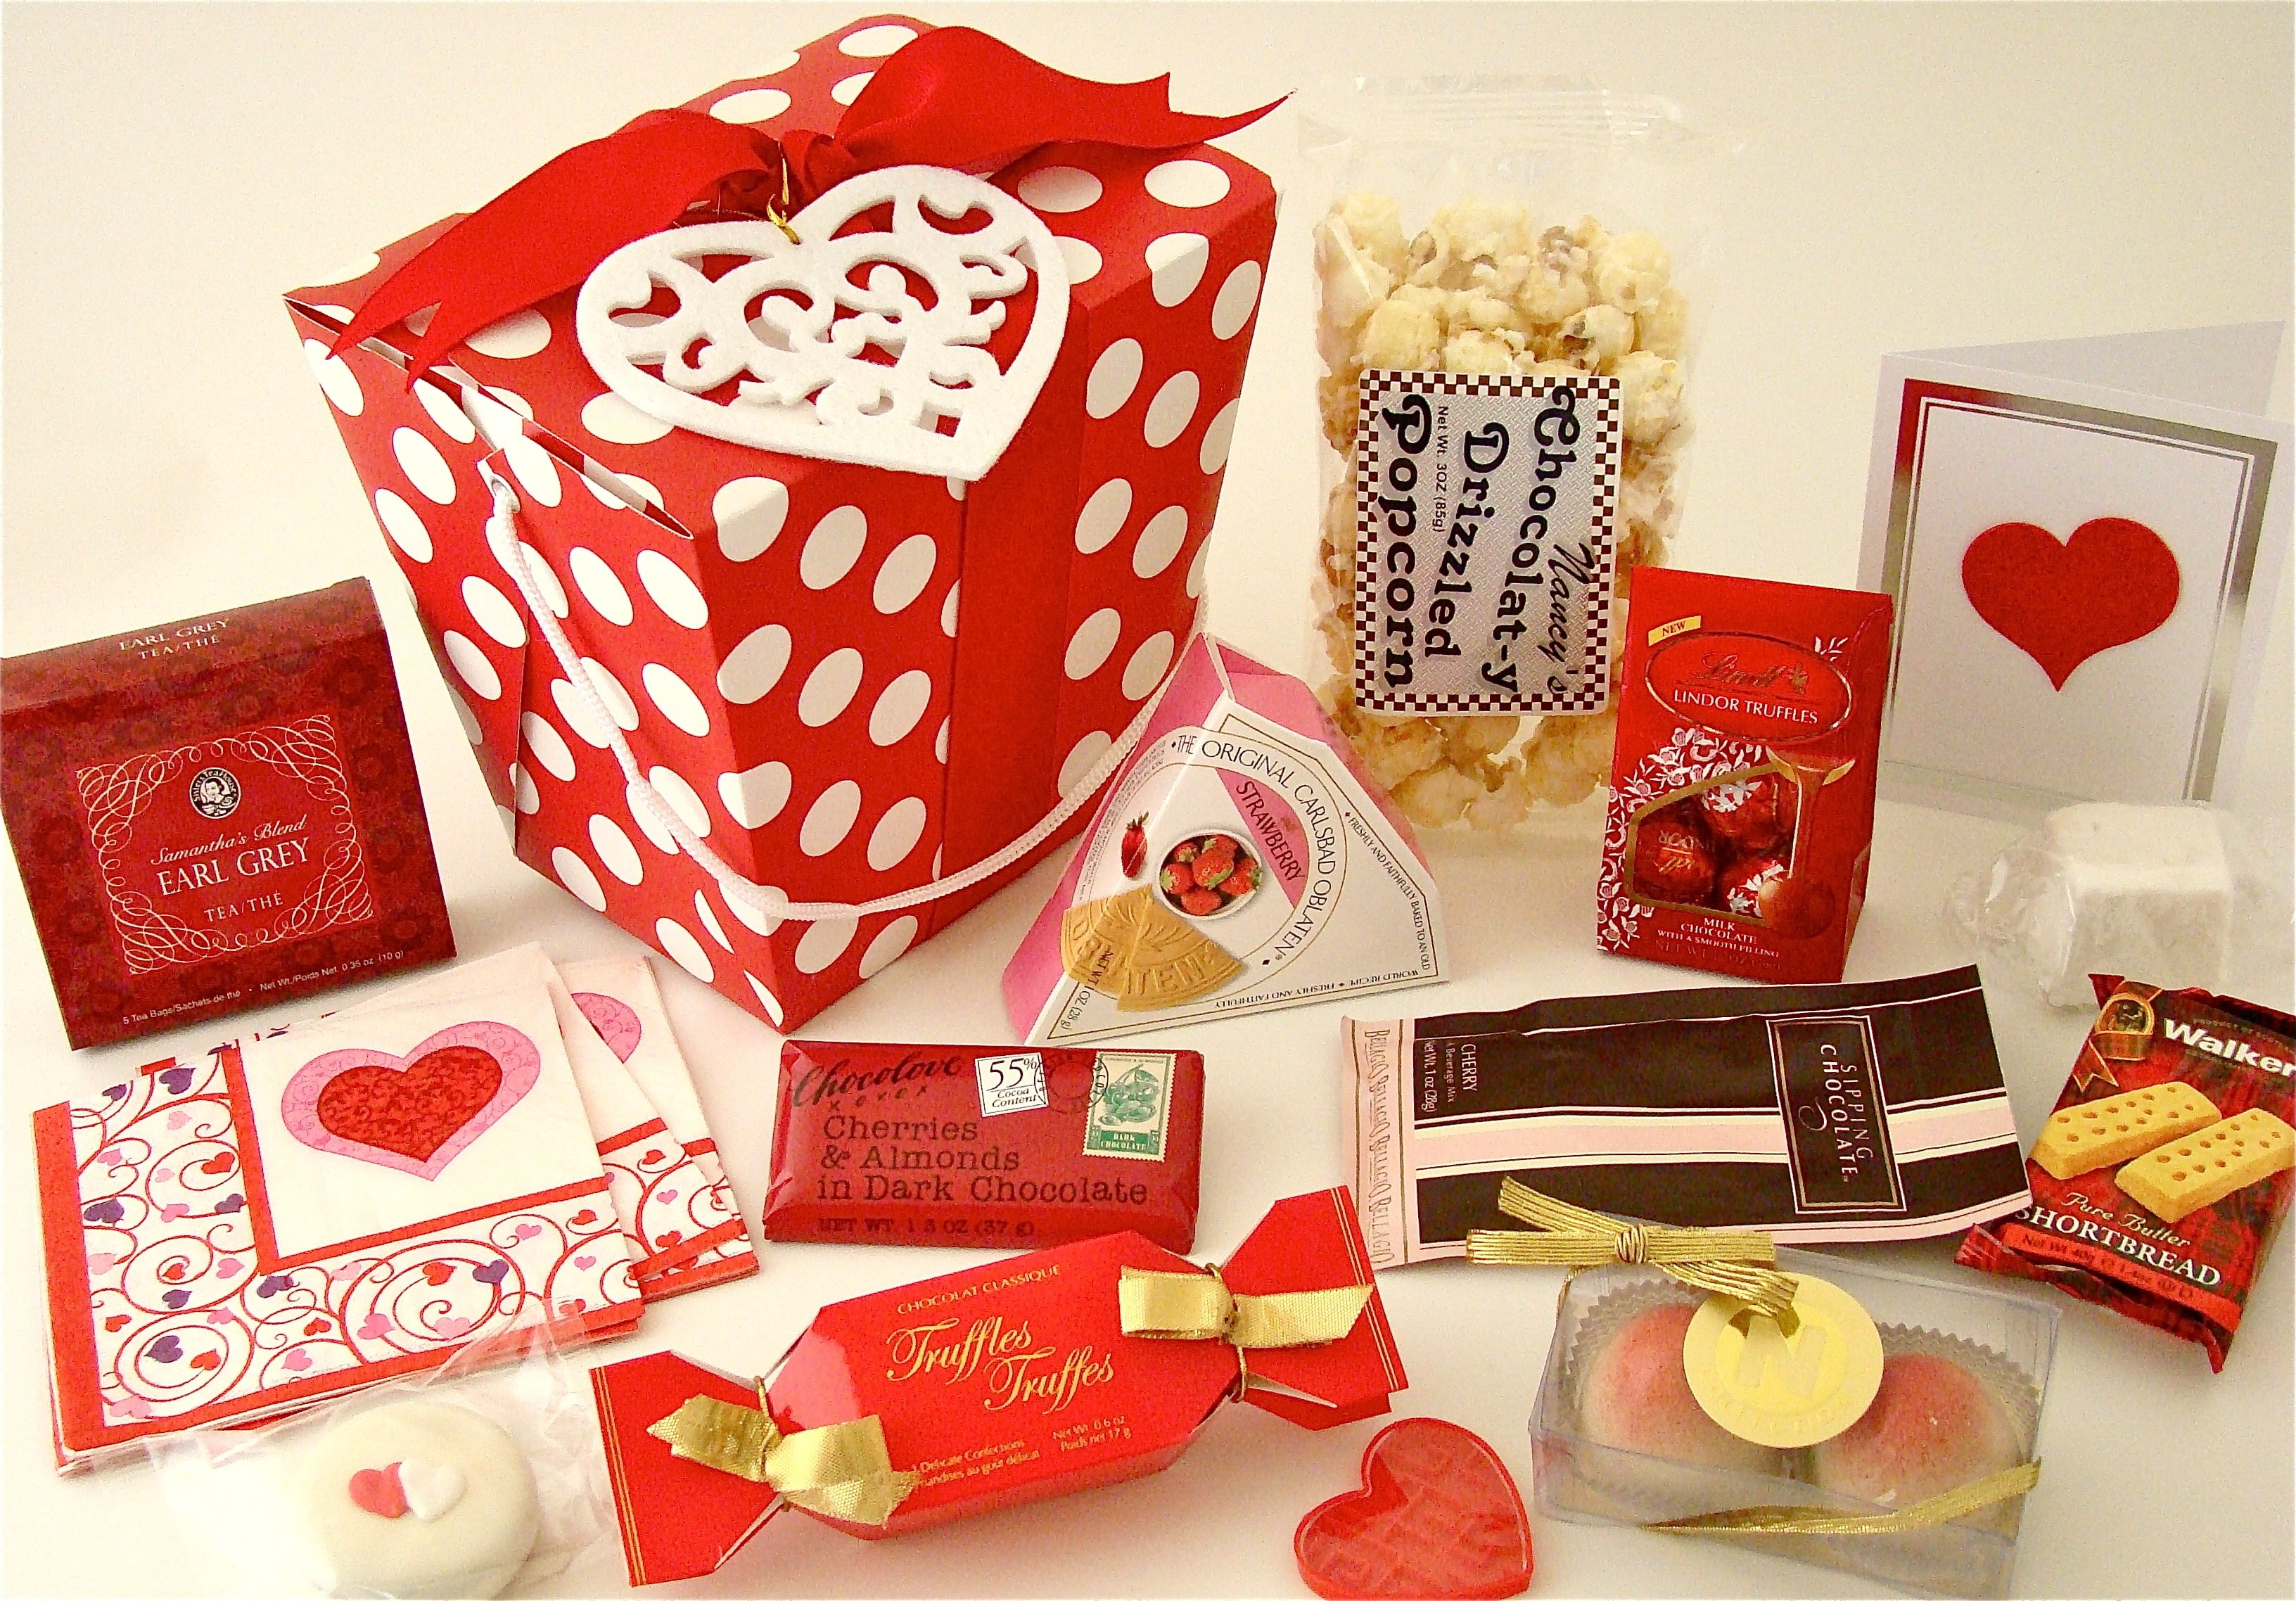 10 Spectacular Valentine Gifts For Her Ideas excellent valentines day gifts for her trendy mods 1